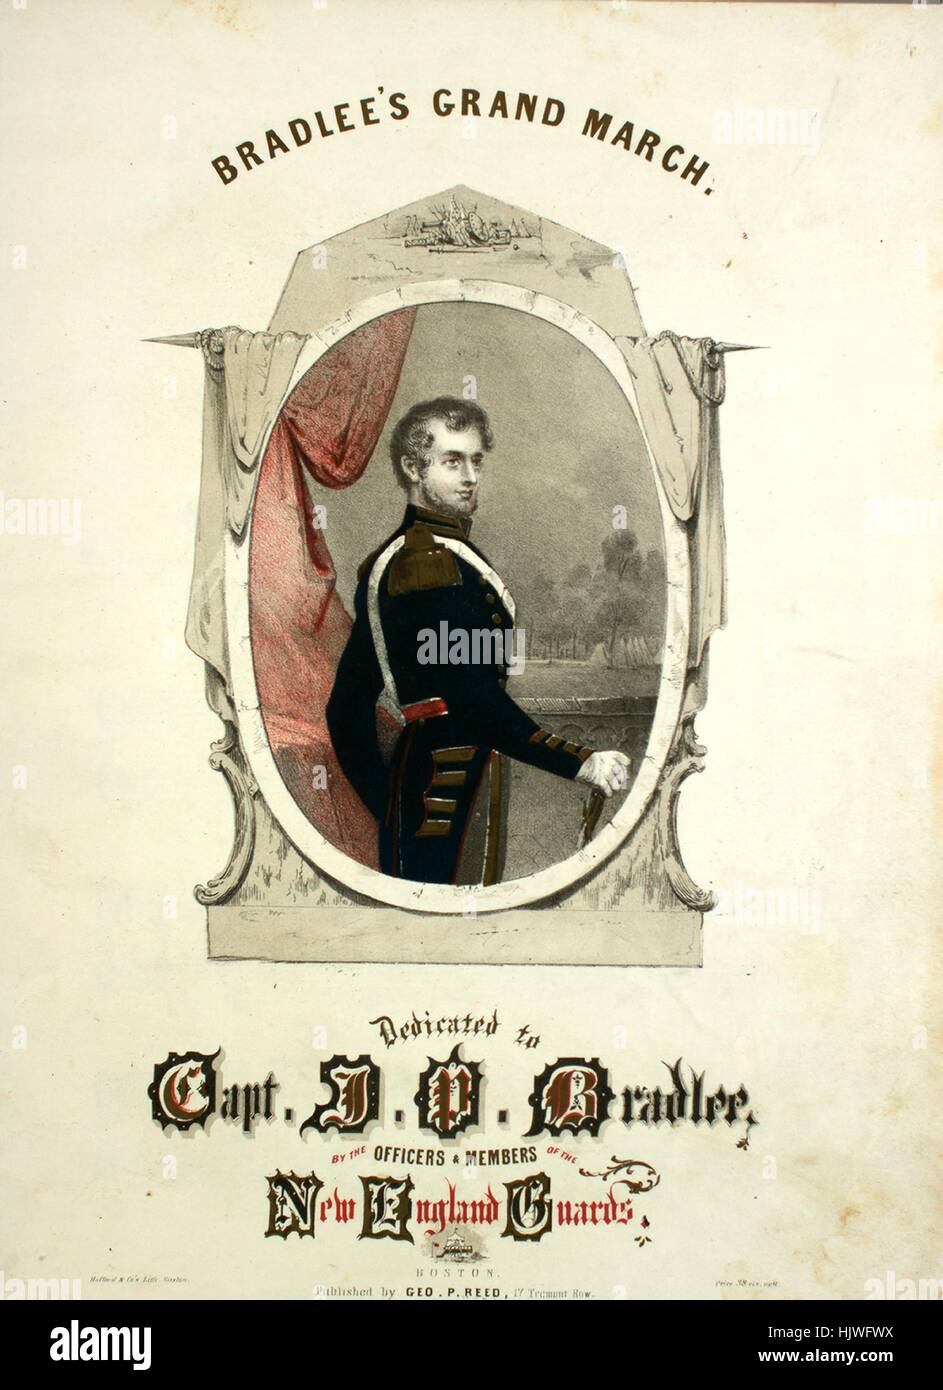 Sheet music cover image of the song 'Bradlee's Grand March', with original authorship notes reading - Stock Image